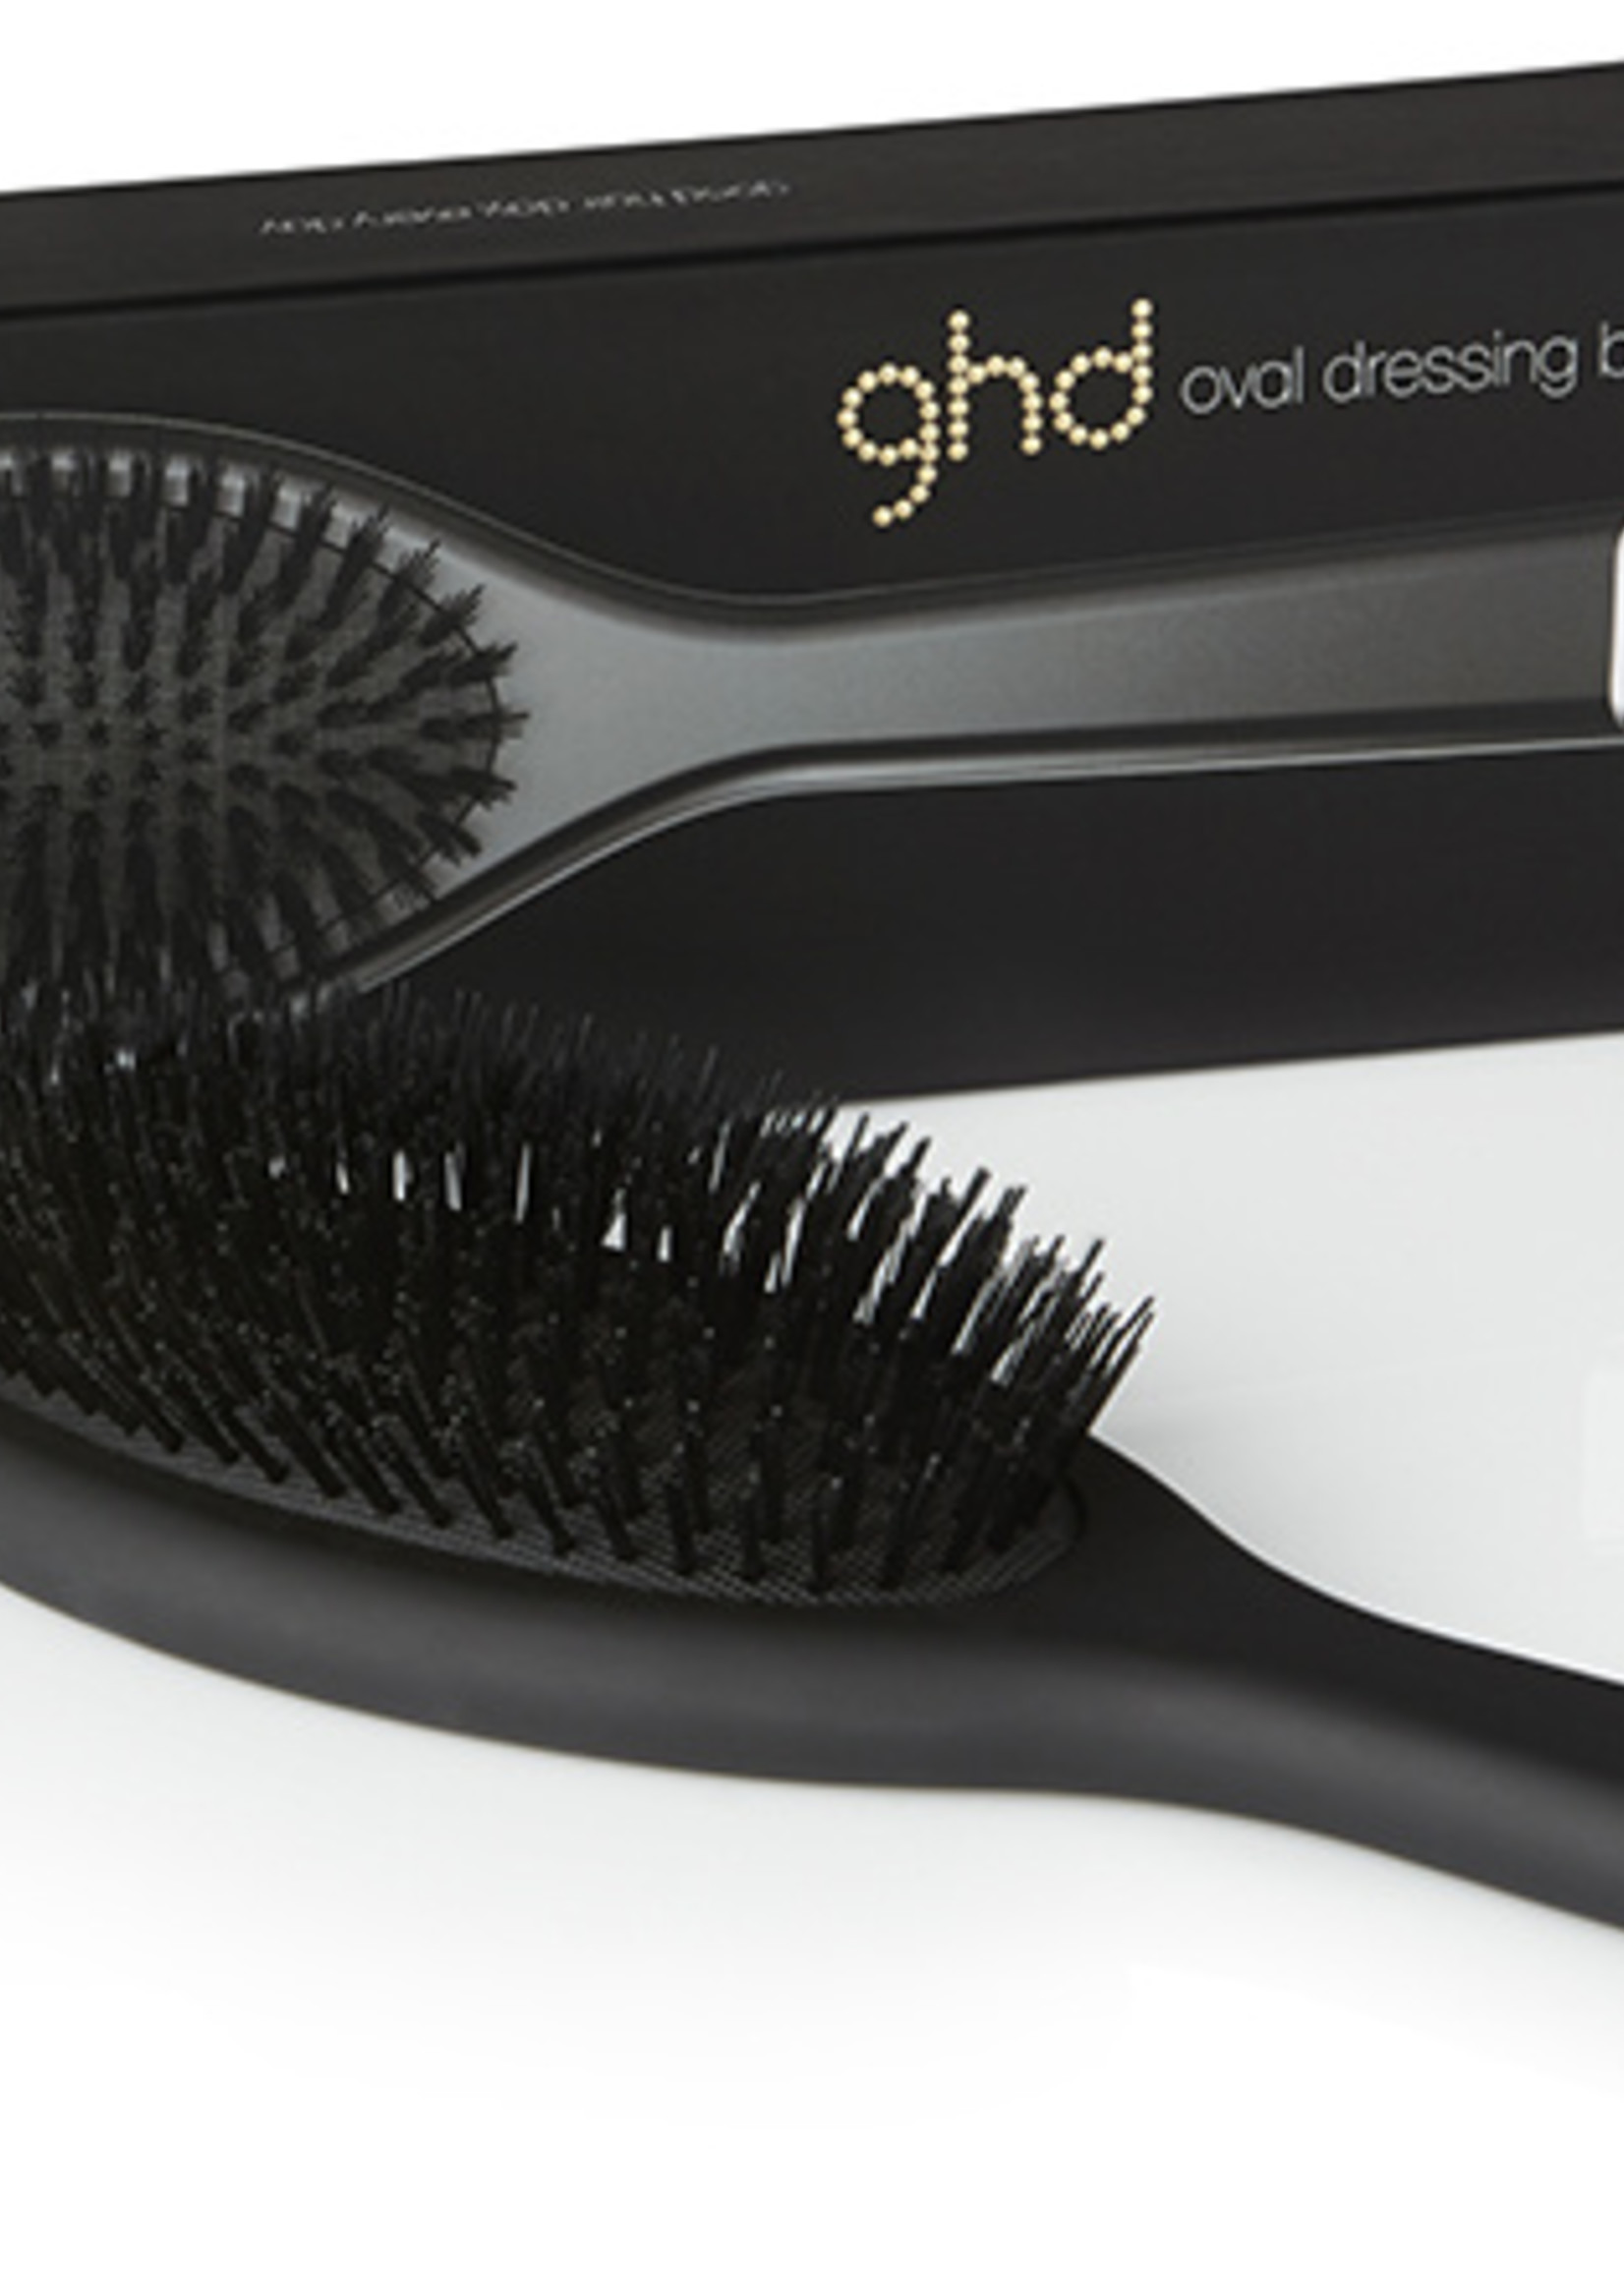 GHD professional OVAL DRESSING BRUSH